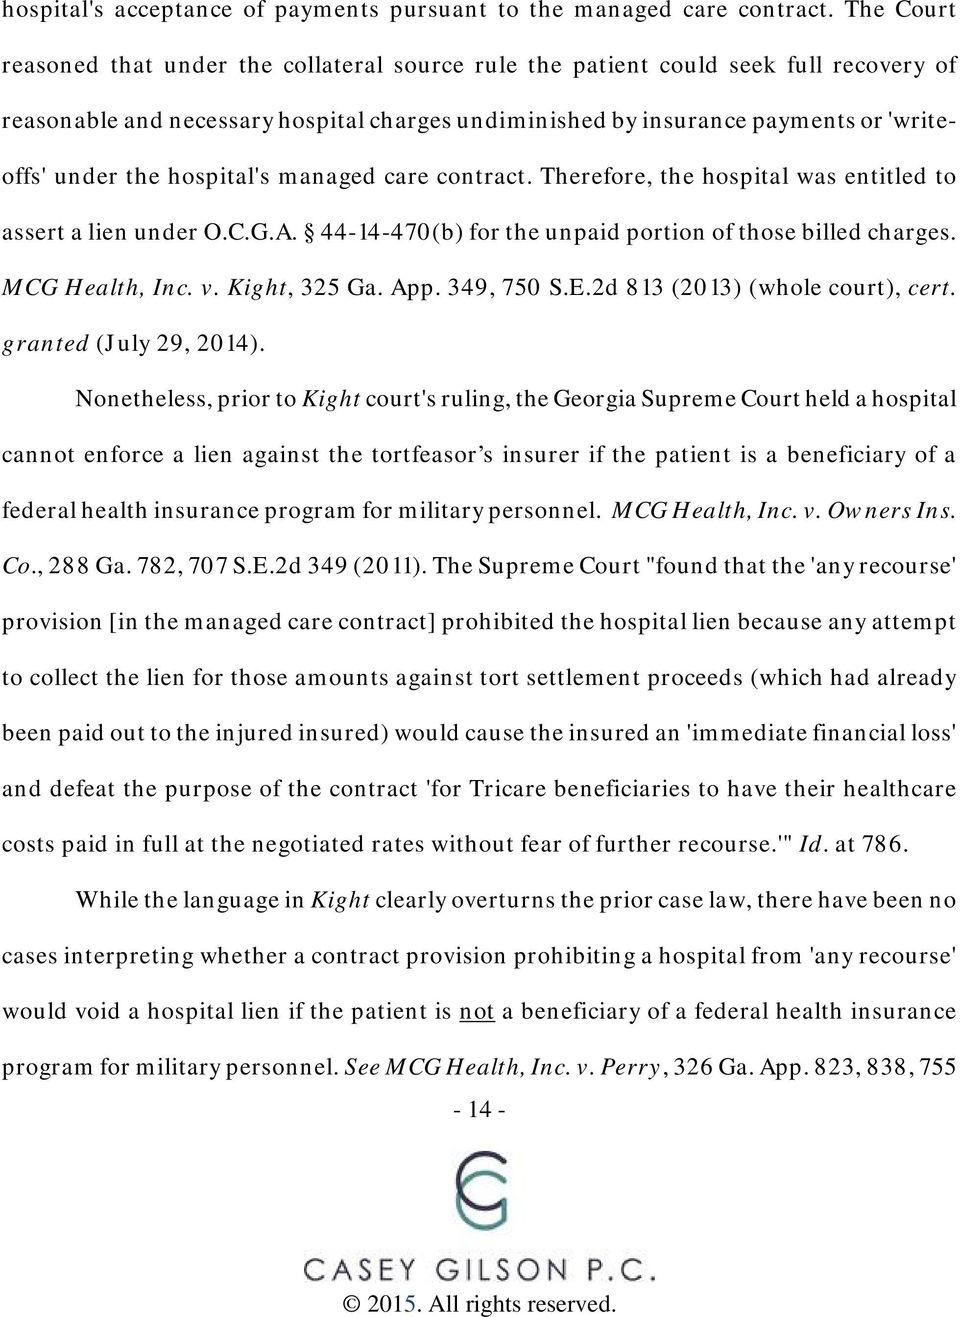 hospital's managed care contract. Therefore, the hospital was entitled to assert a lien under O.C.G.A. 44-14-470(b) for the unpaid portion of those billed charges. MCG Health, Inc. v. Kight, 325 Ga.